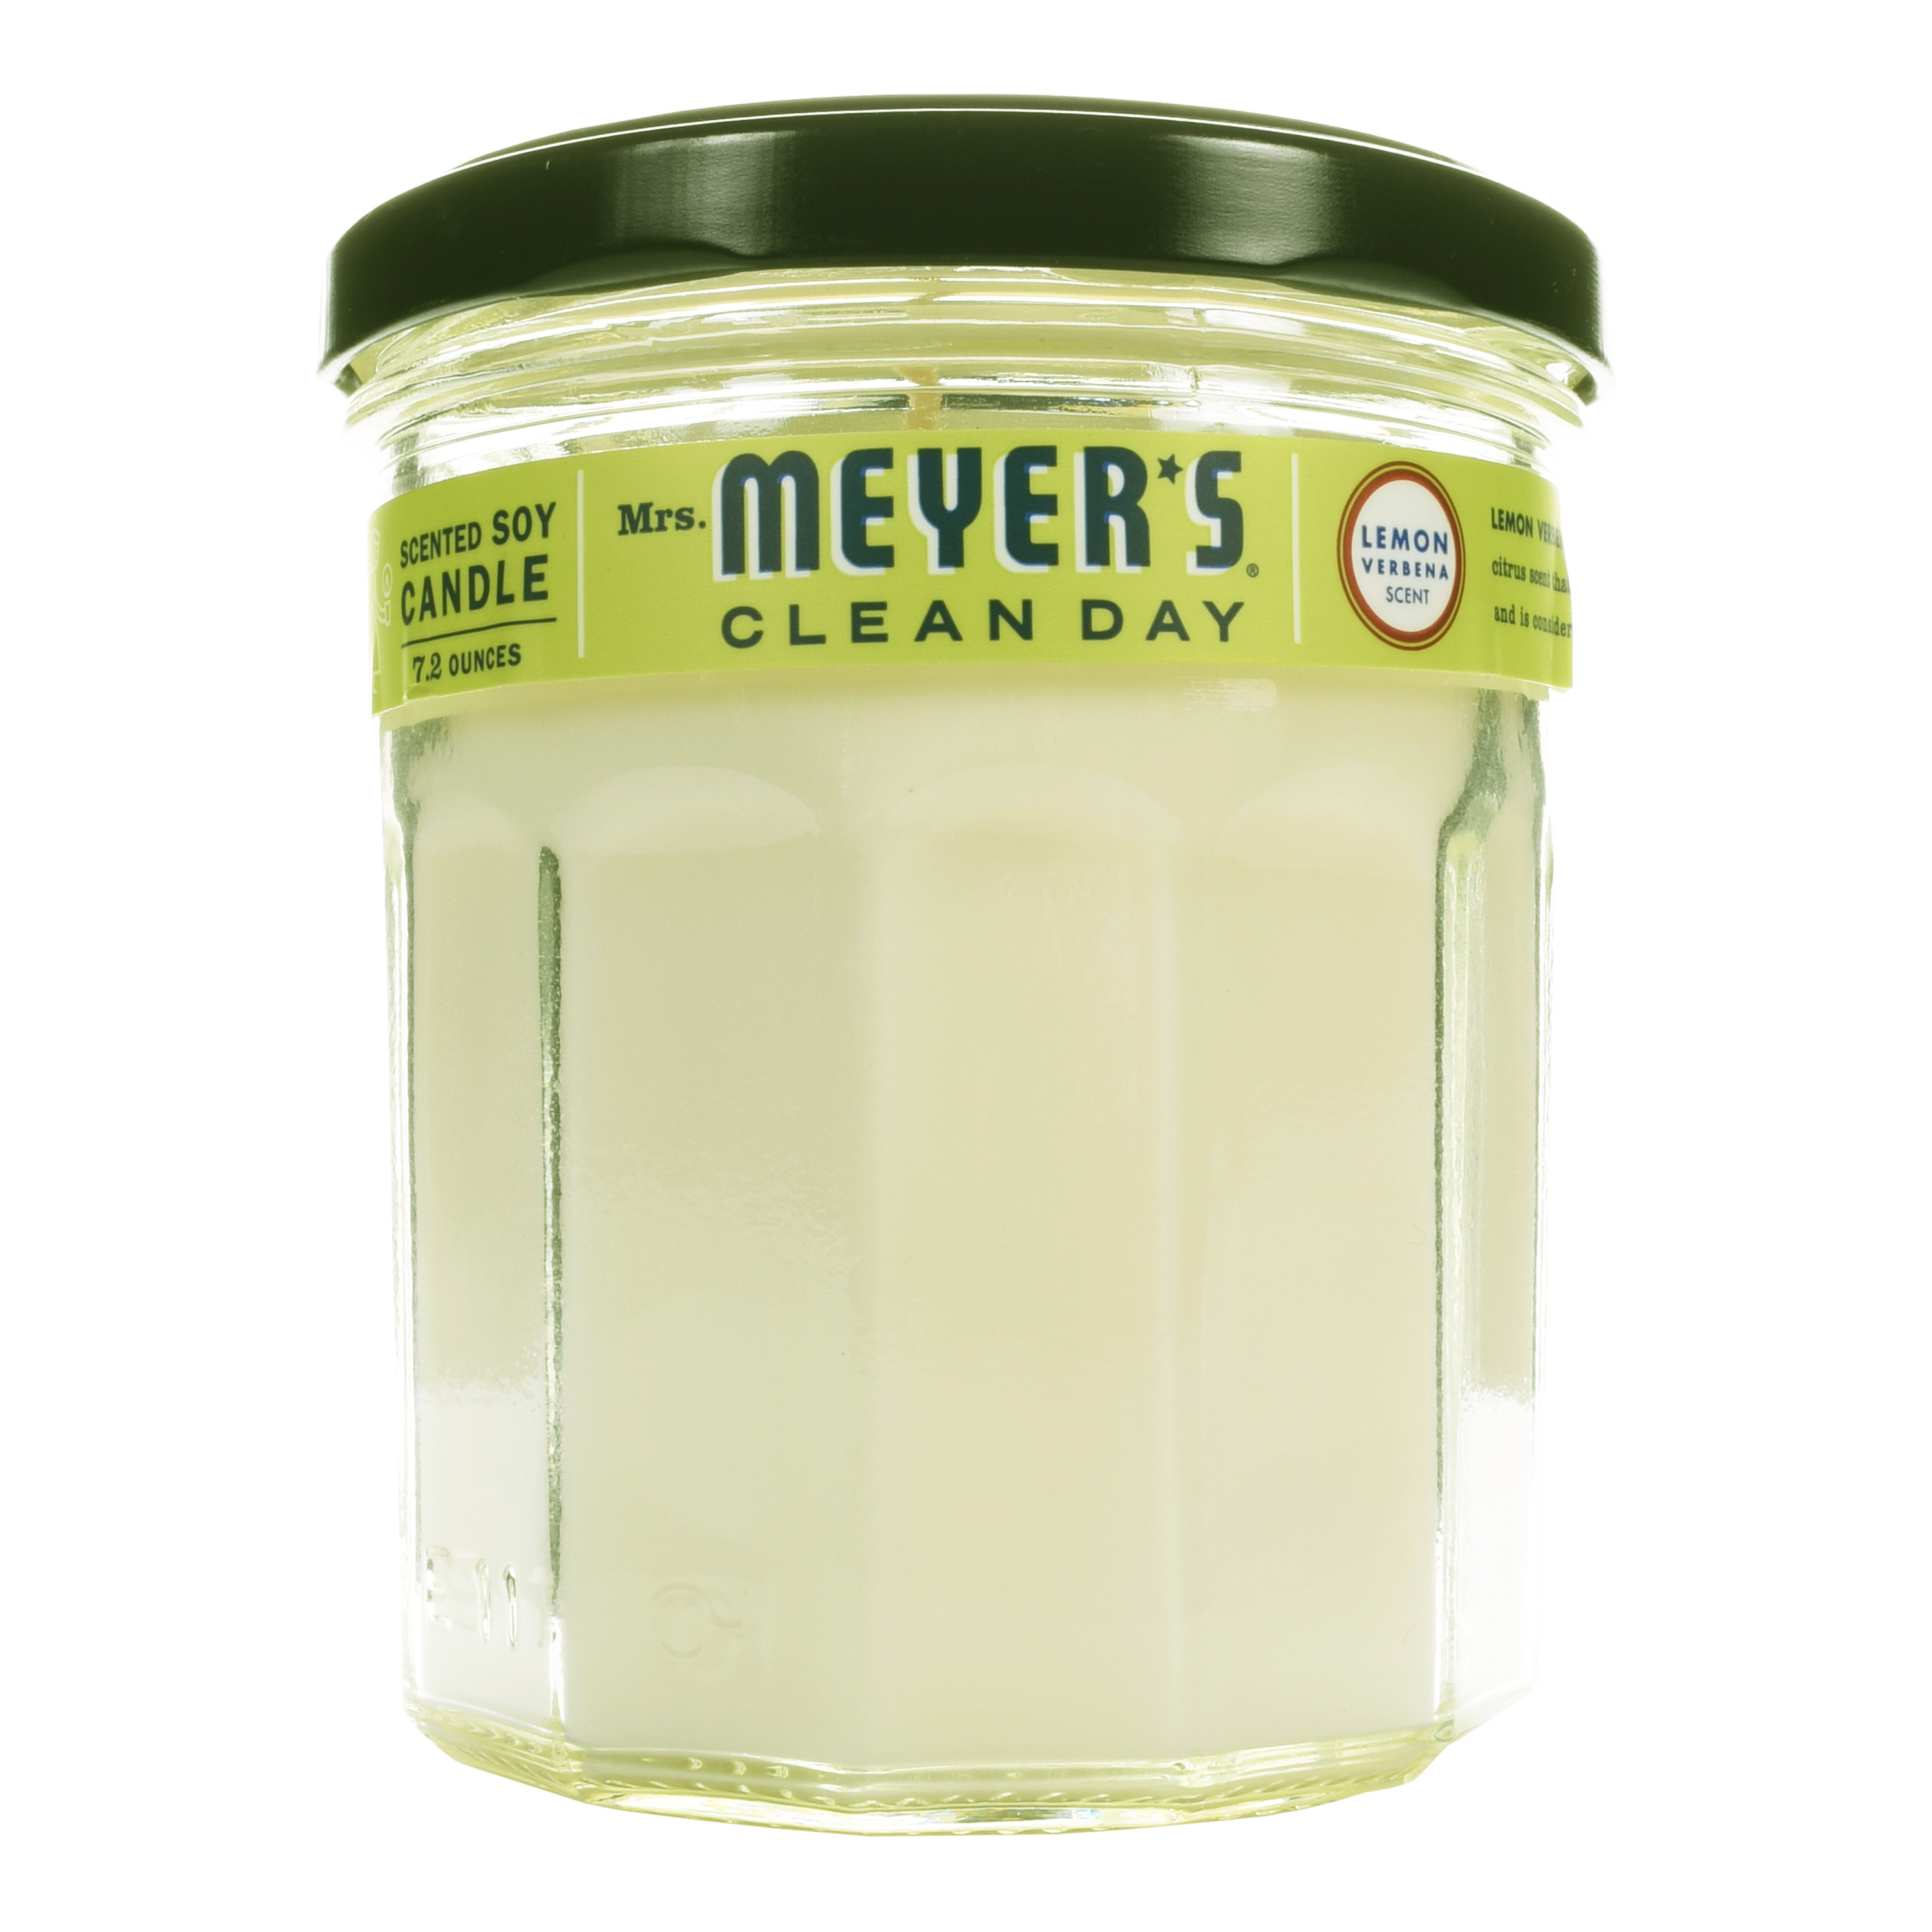 Mrs. Meyer's Clean Day Scented Soy Candle, Large Glass, Lemon Verbena, Candle, 7.2 ounce